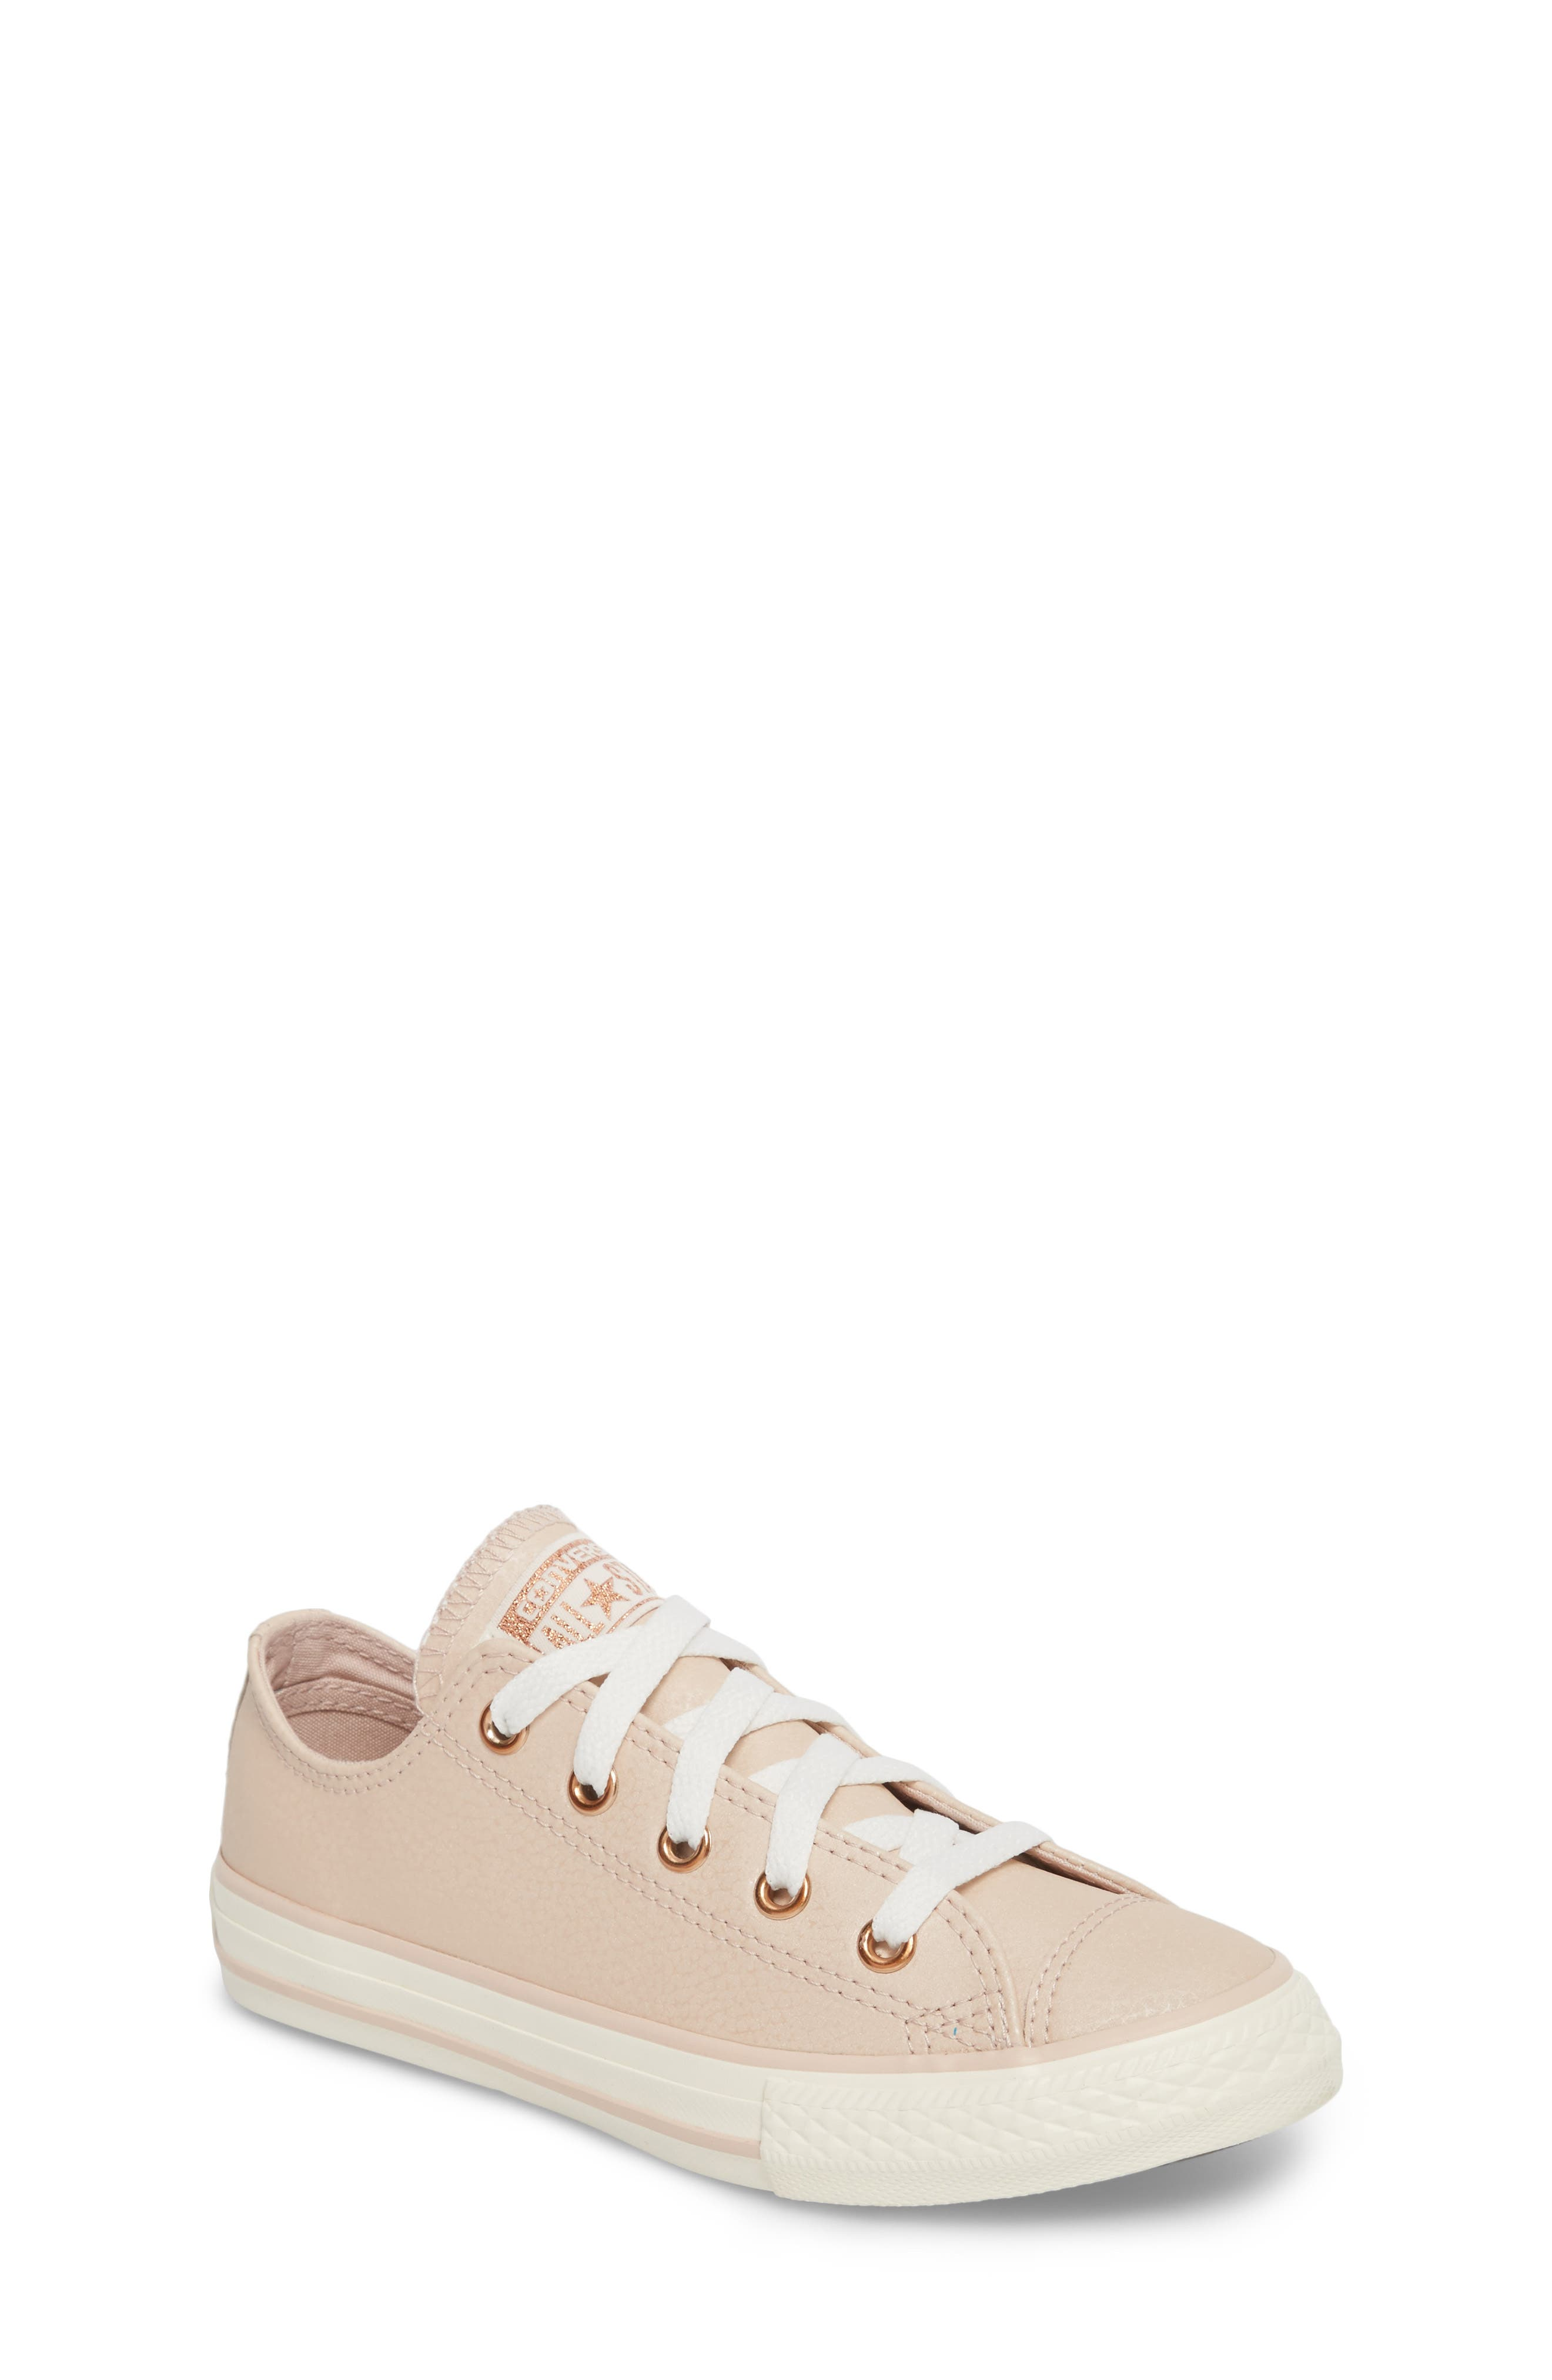 All Star<sup>®</sup> Fashion Low Top Sneaker,                             Main thumbnail 1, color,                             Particle Beige